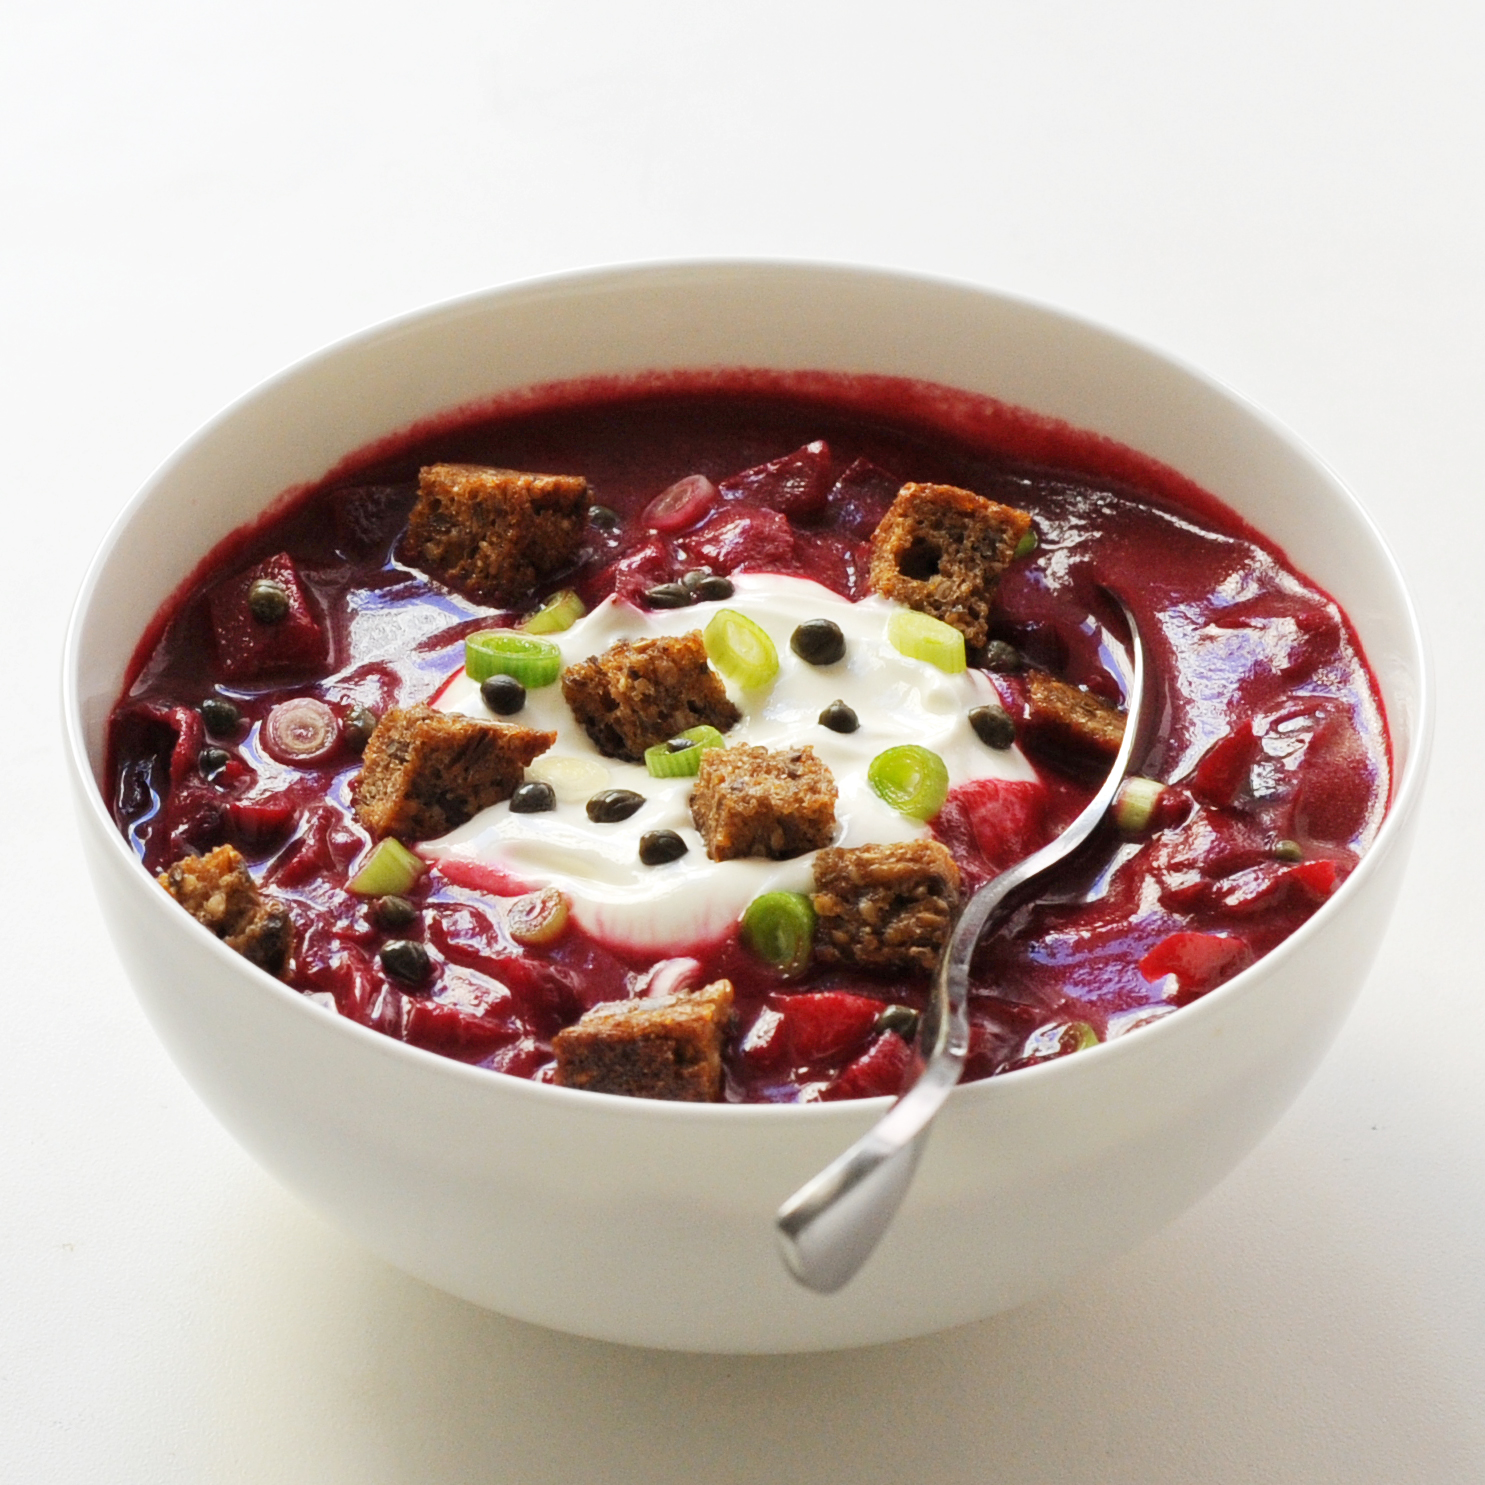 Beet and Red Cabbage Borscht